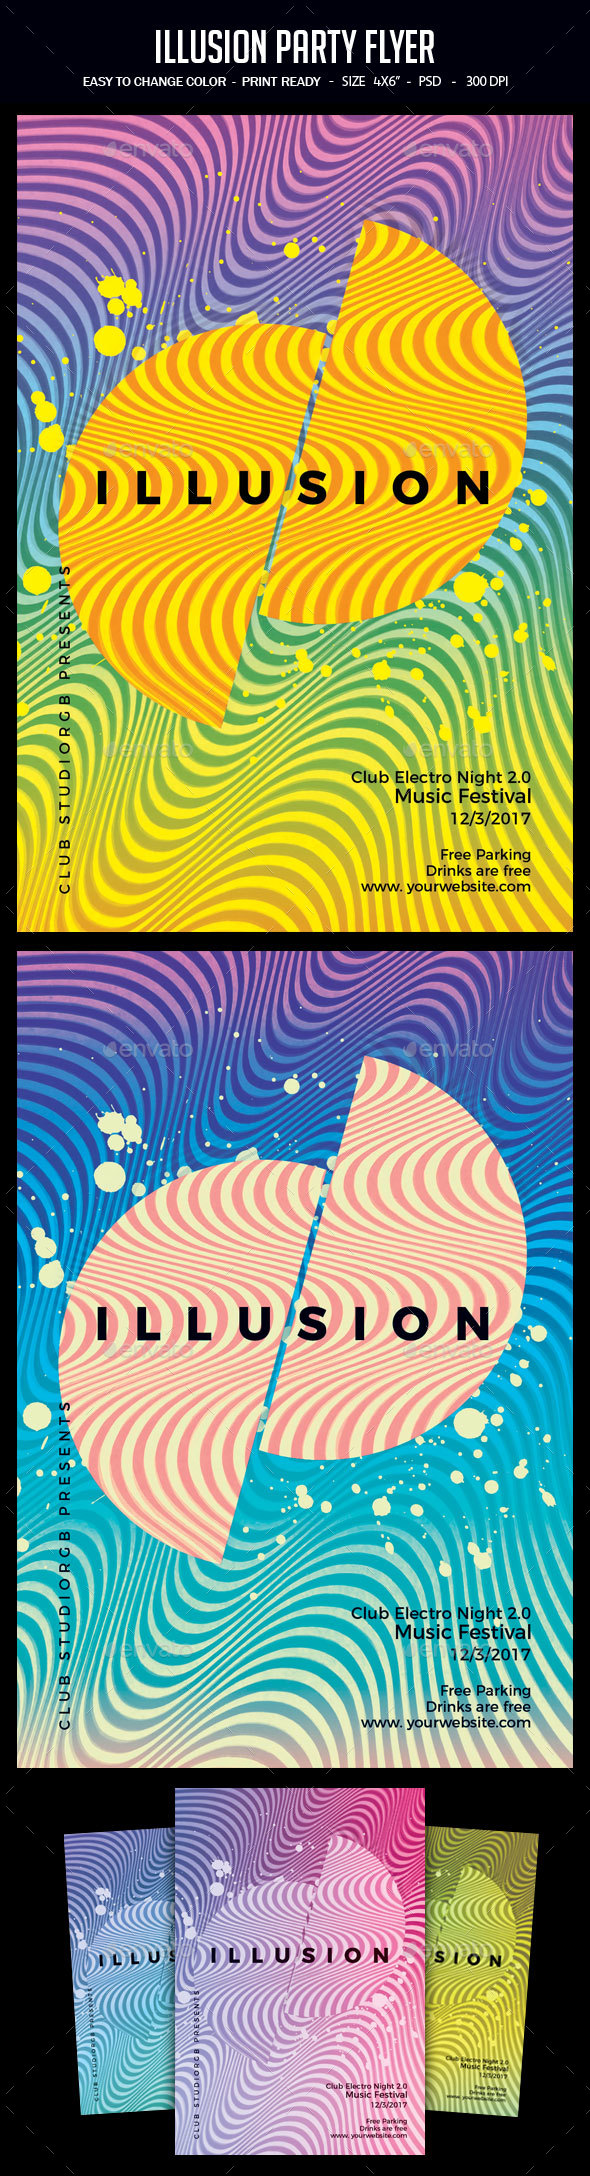 Illusion Party Flyer - Clubs & Parties Events